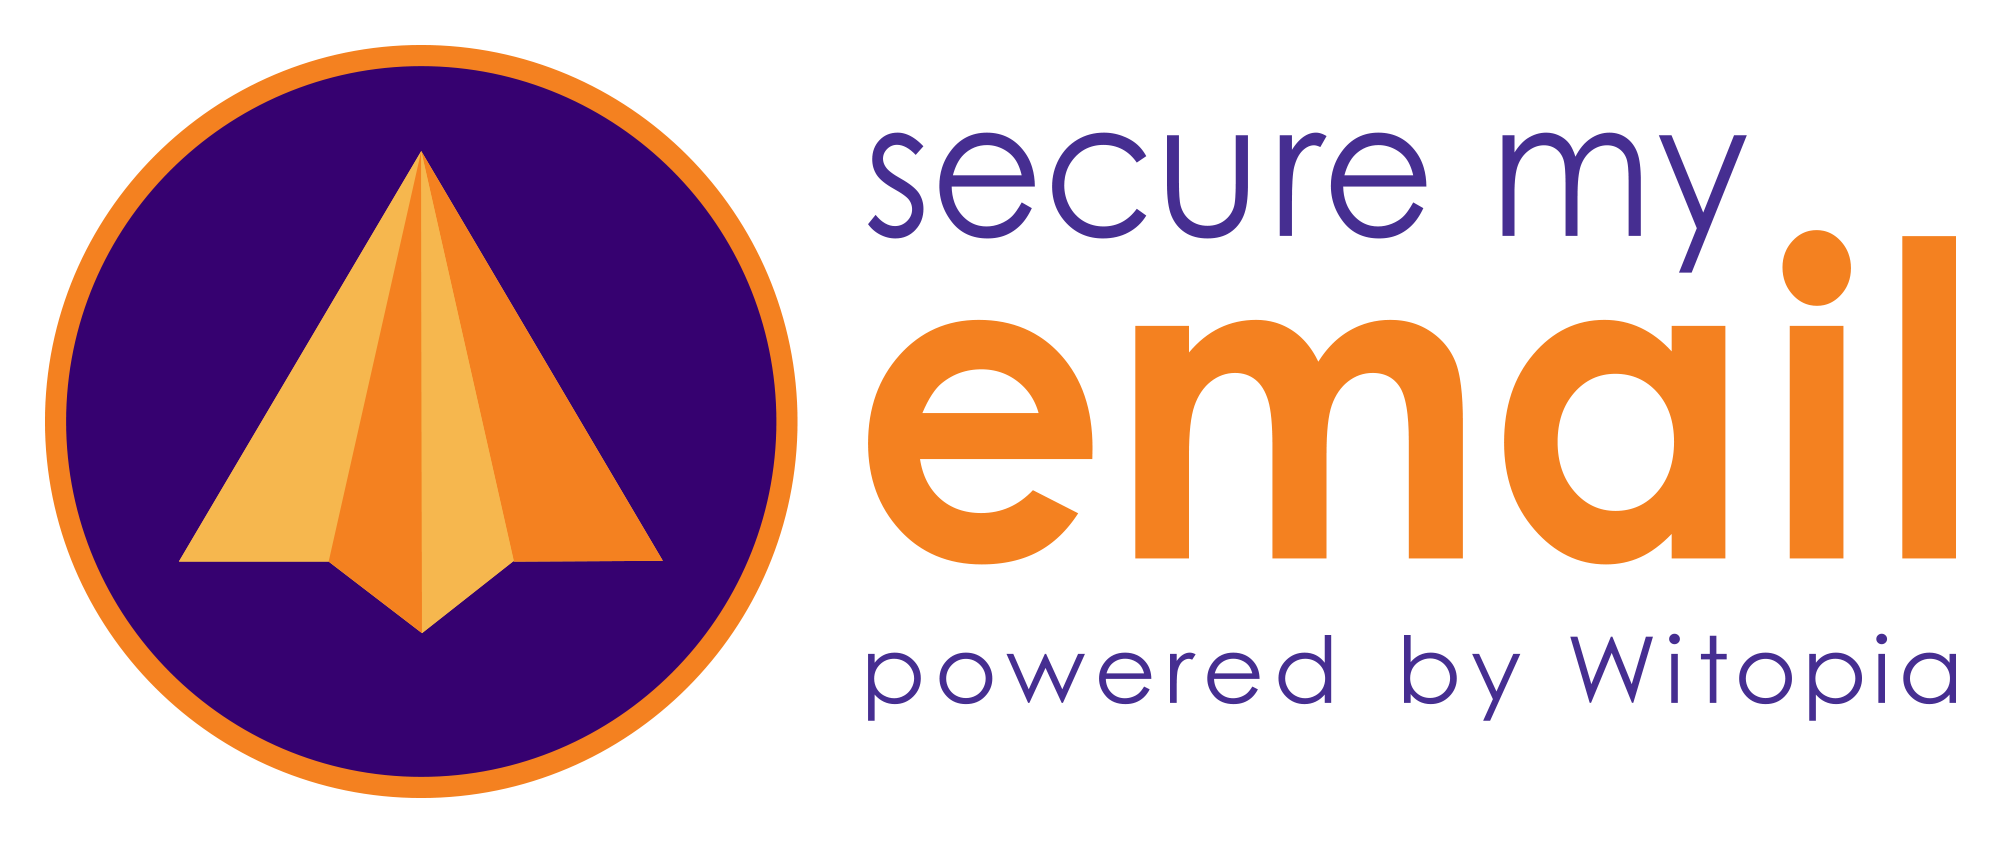 SecureMyEmail Forums